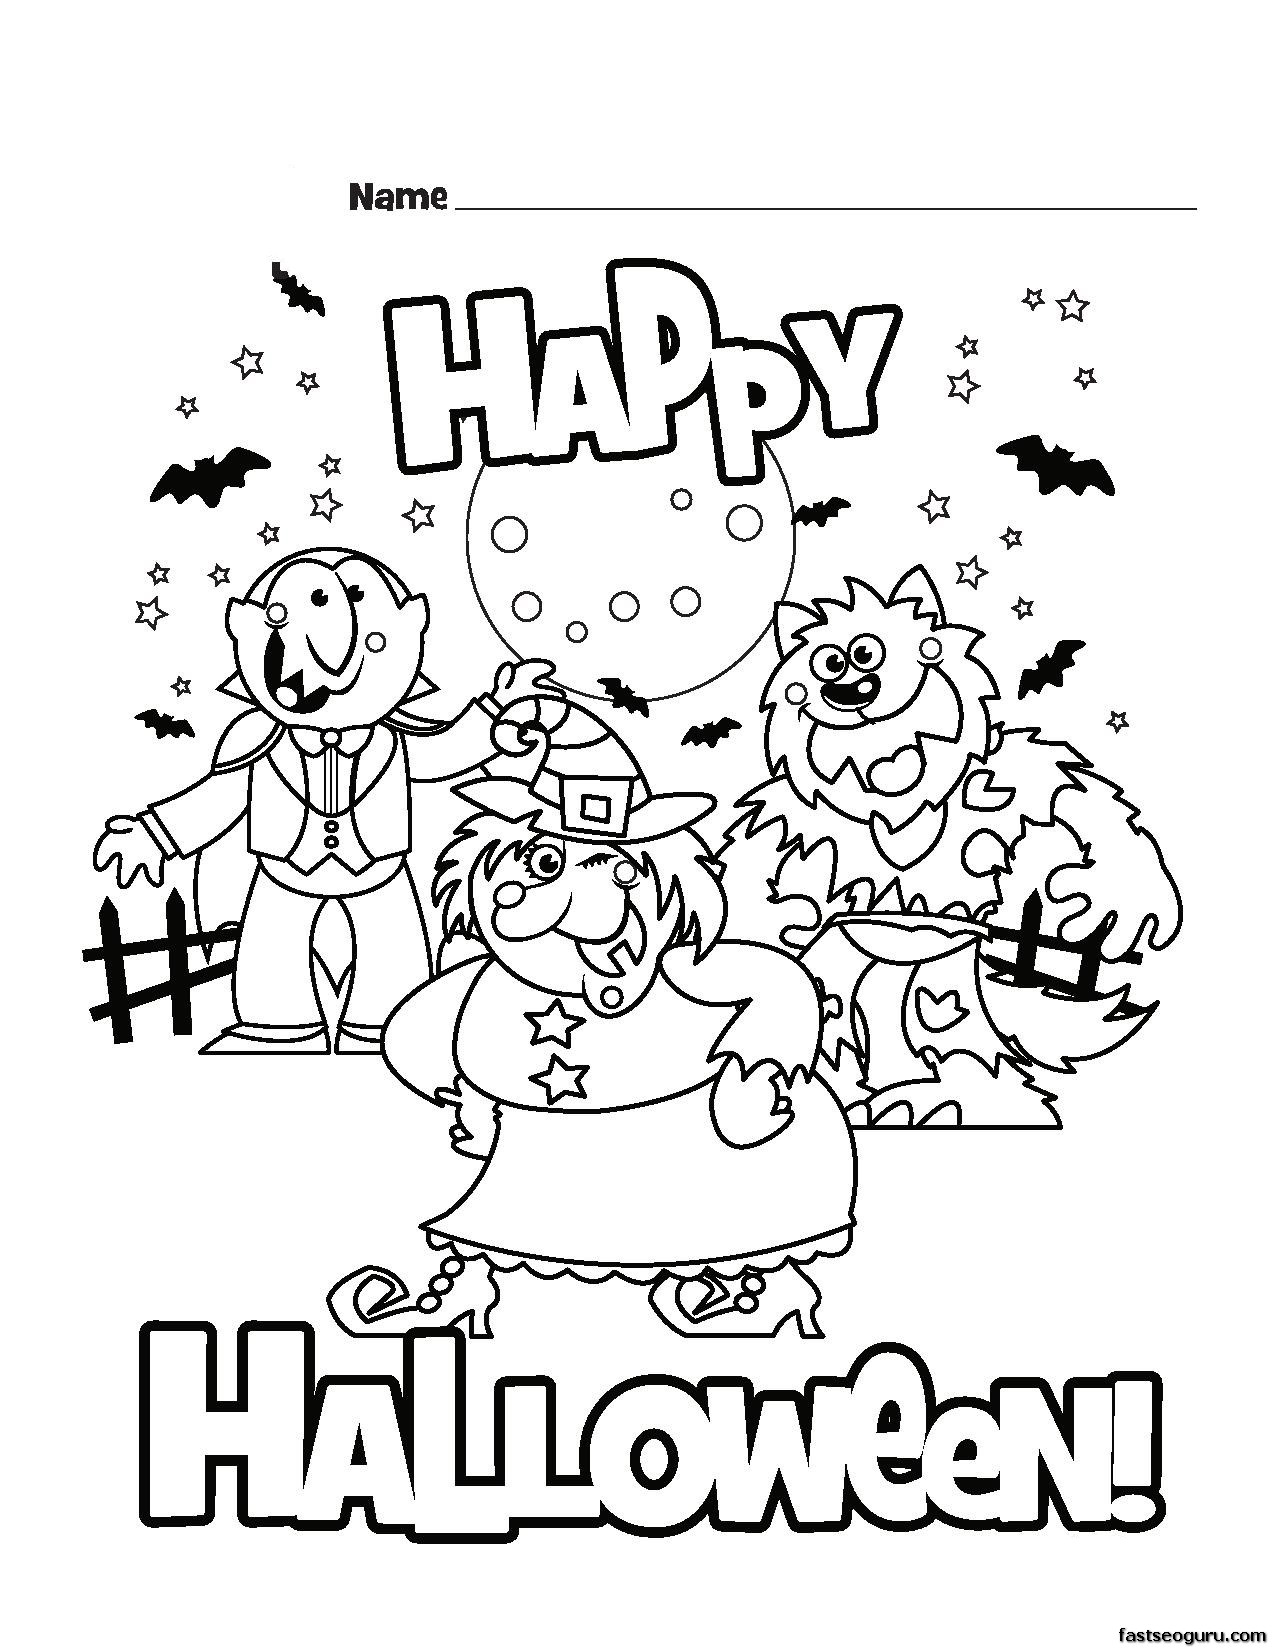 This is a graphic of Halloween Coloring Pages Printable intended for vampire